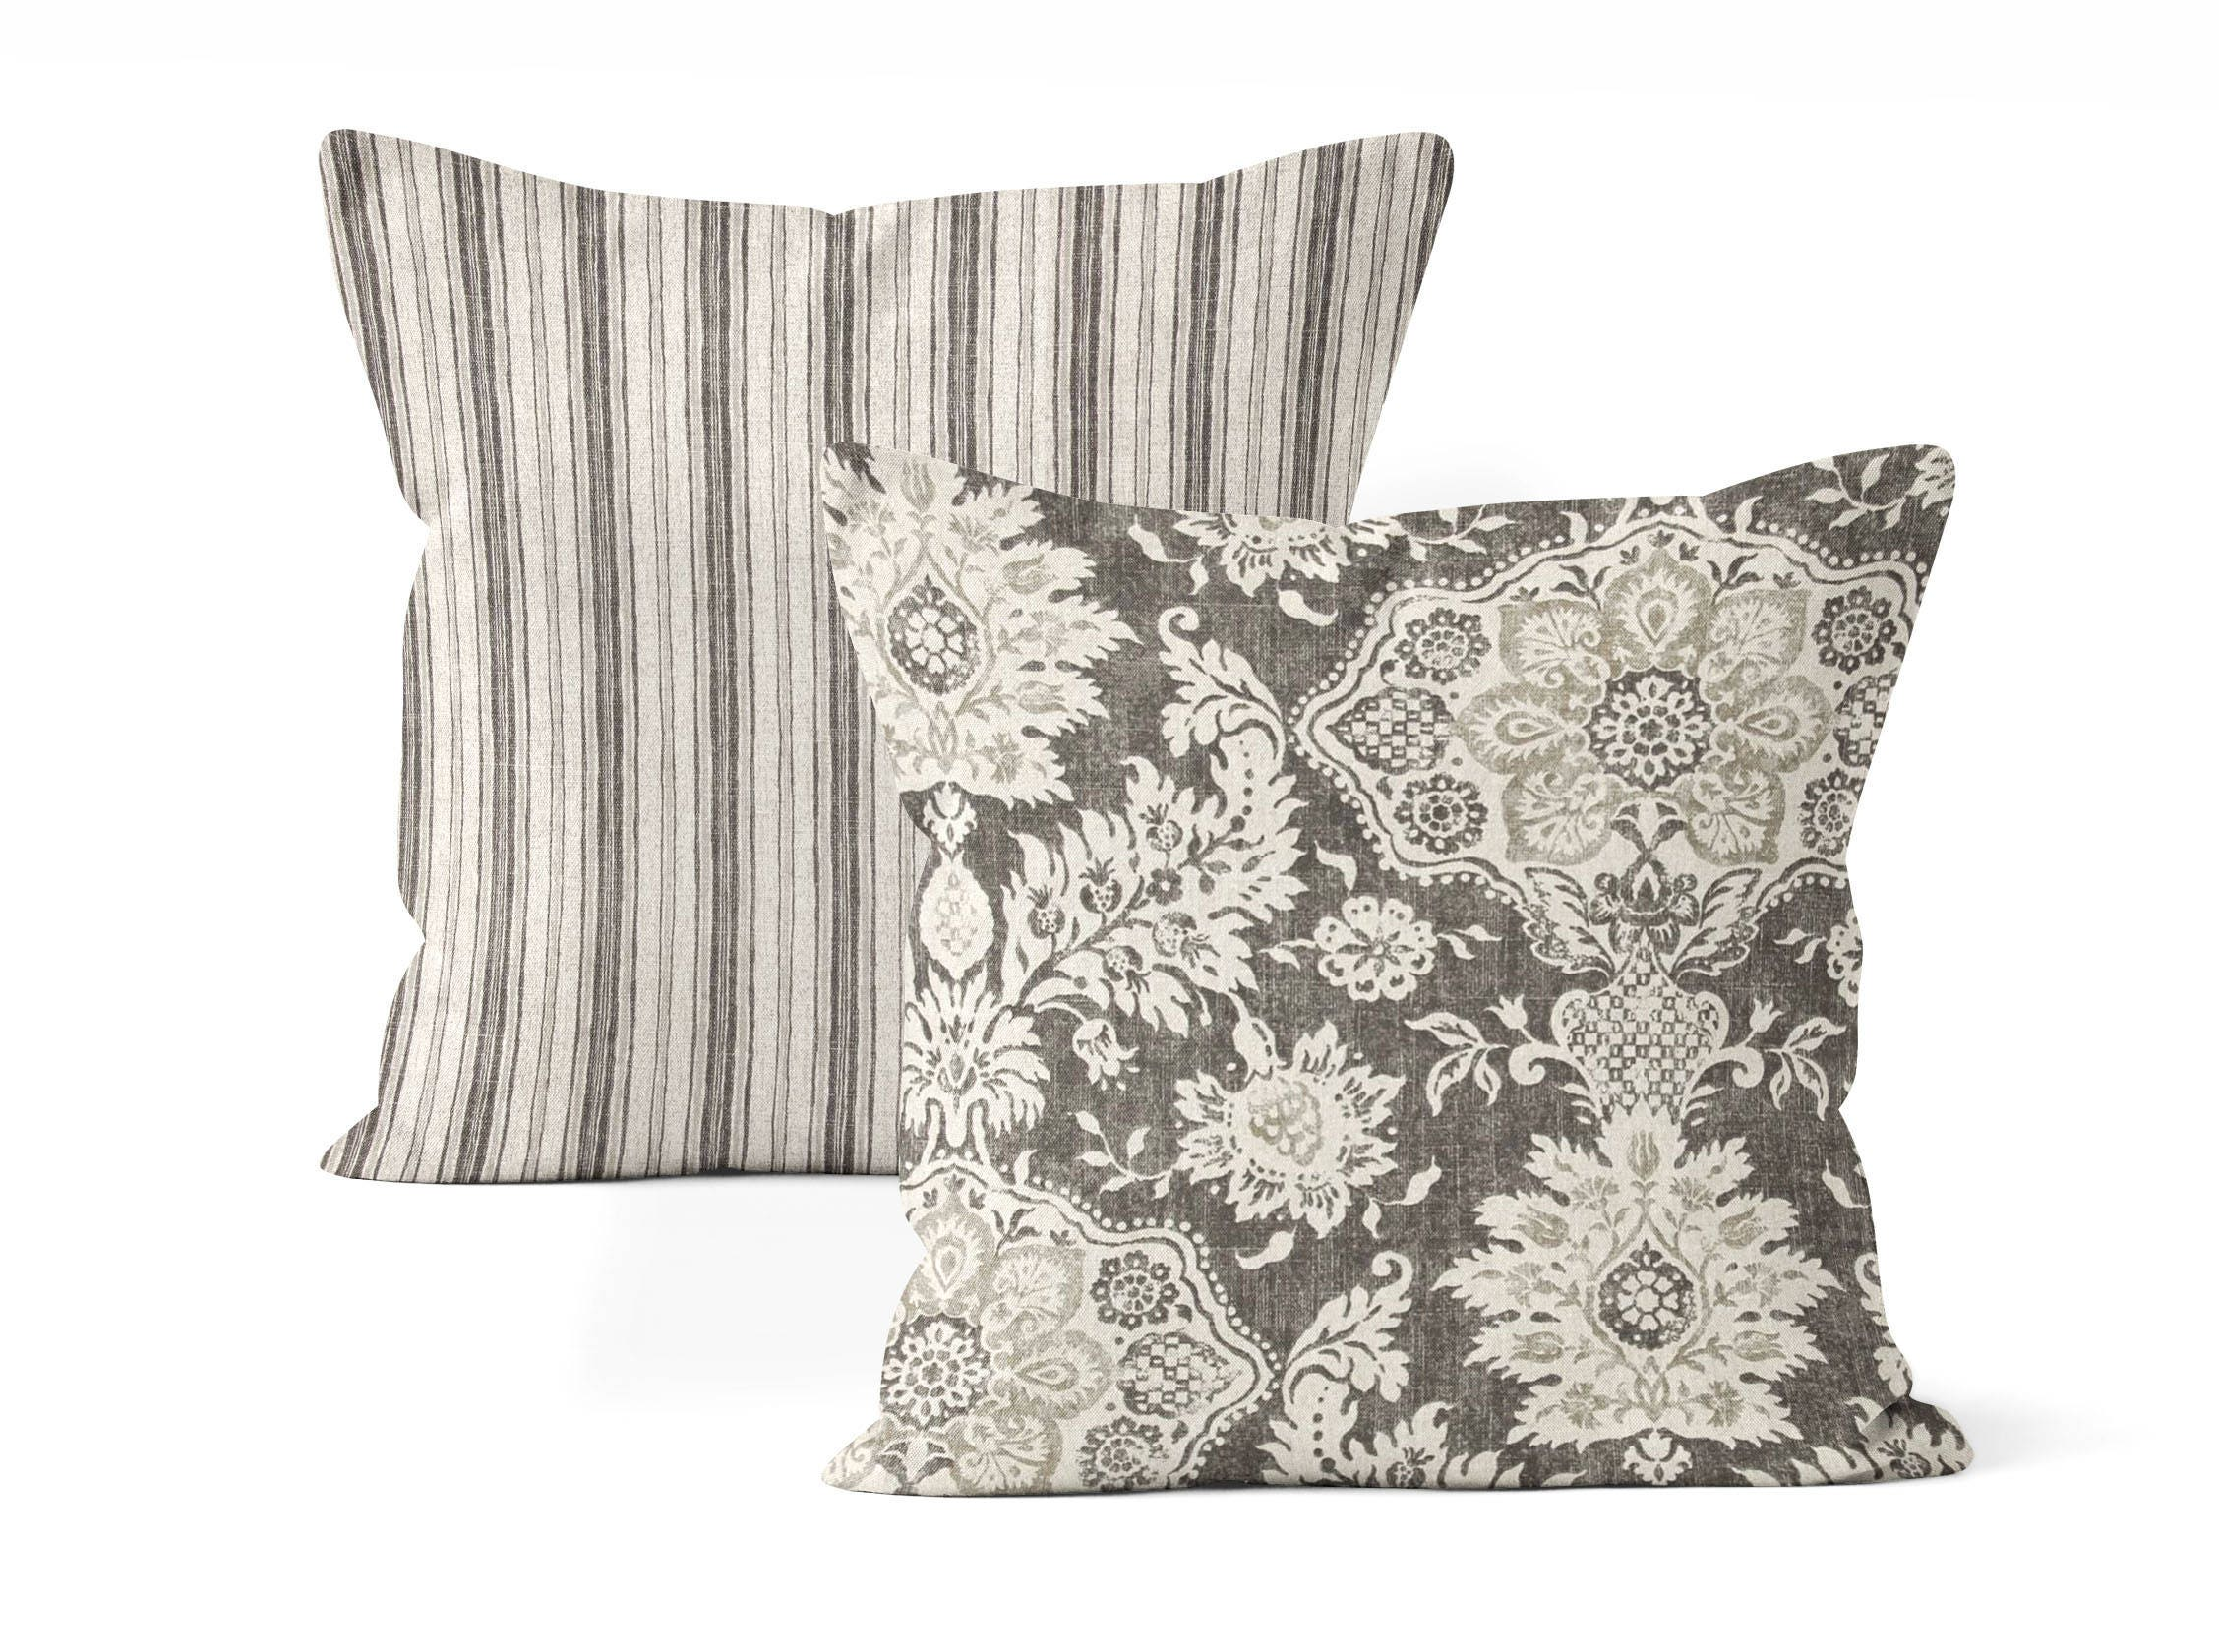 2 farmhouse pillow cover set, throw pillow cover,floral and stripes, dark gray, bed pillows ...